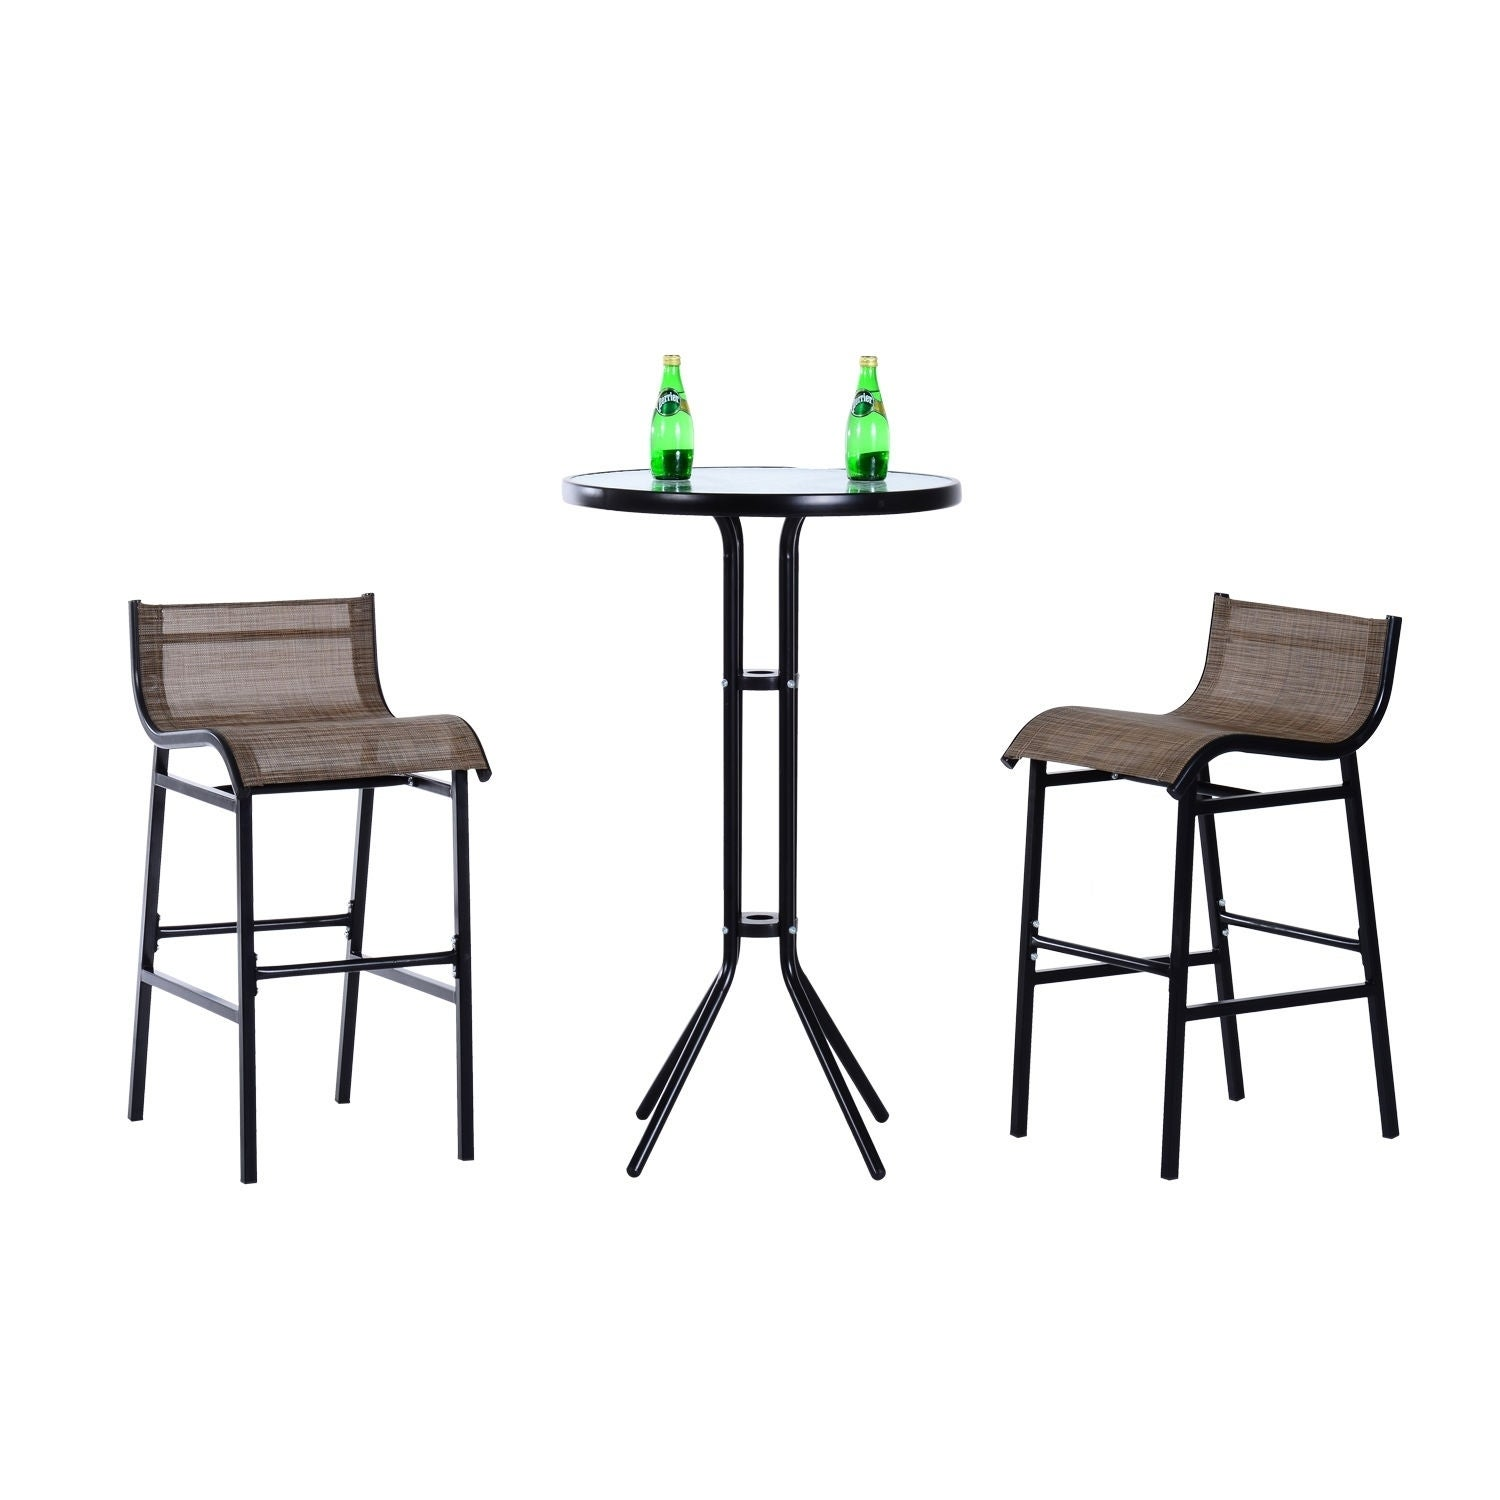 Outsunny 3 Pc Outdoor Patio Pub Bistro Table U0026amp; Chairs Set